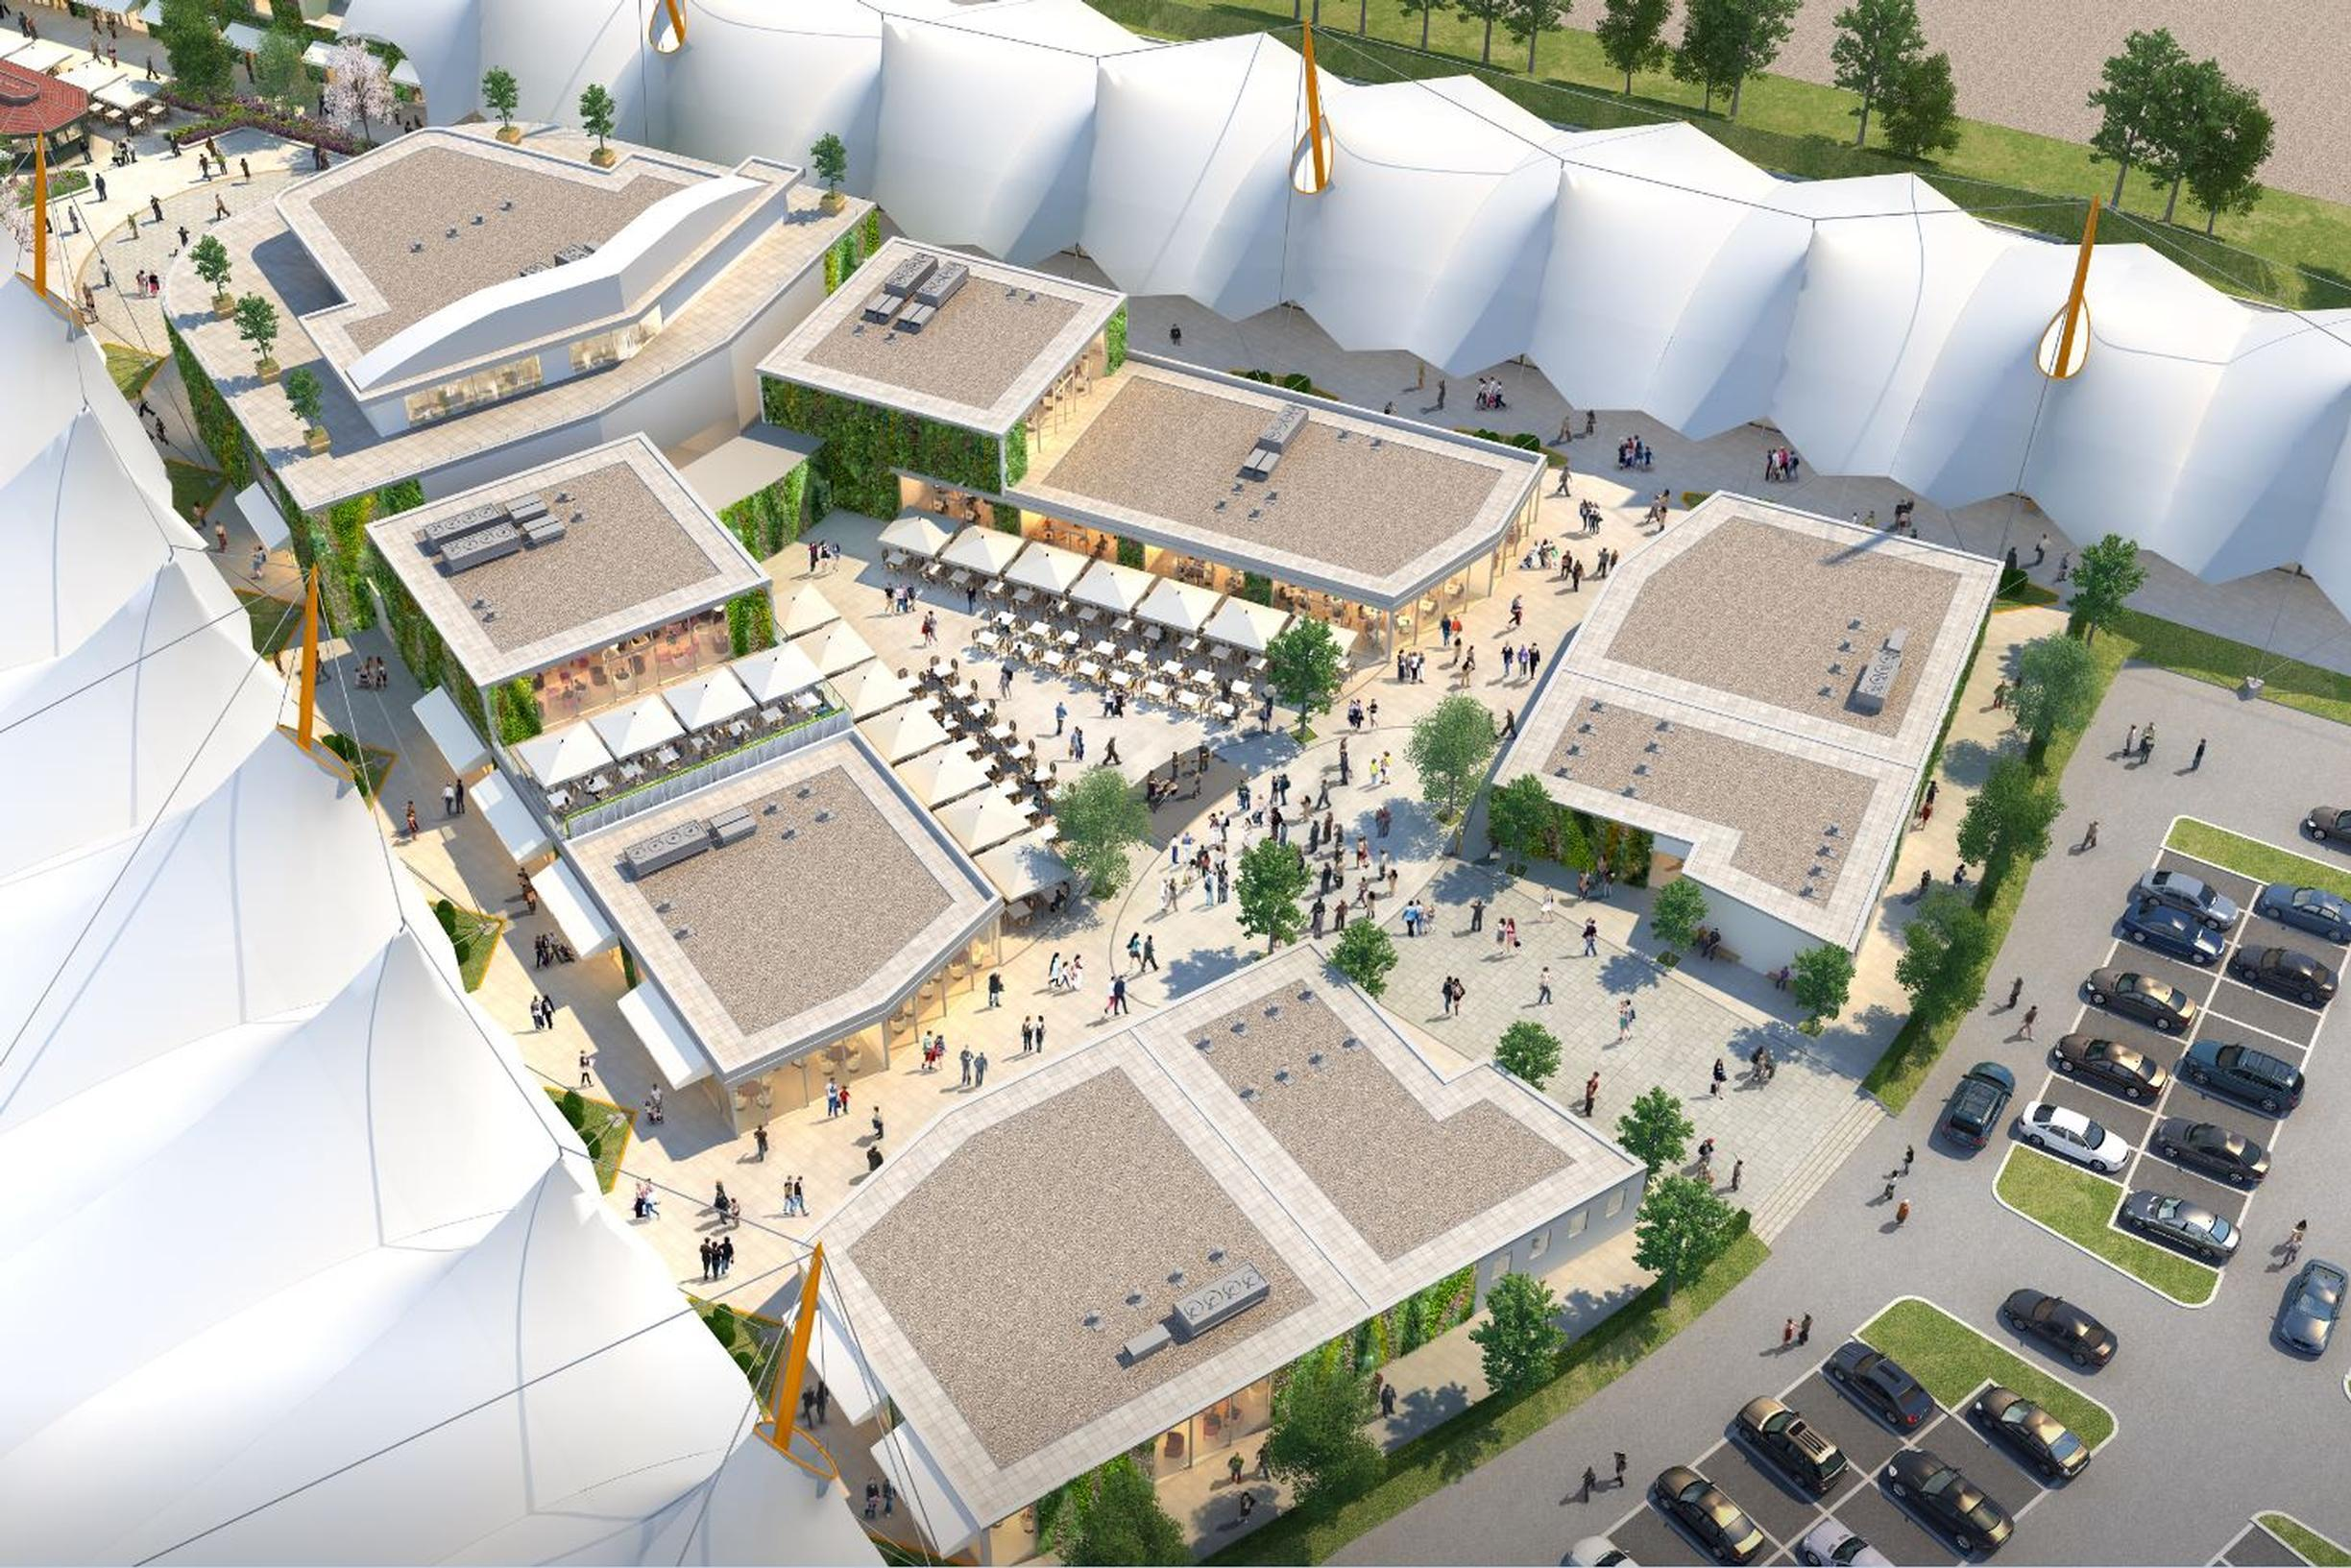 Plan for the revamped outlet centre